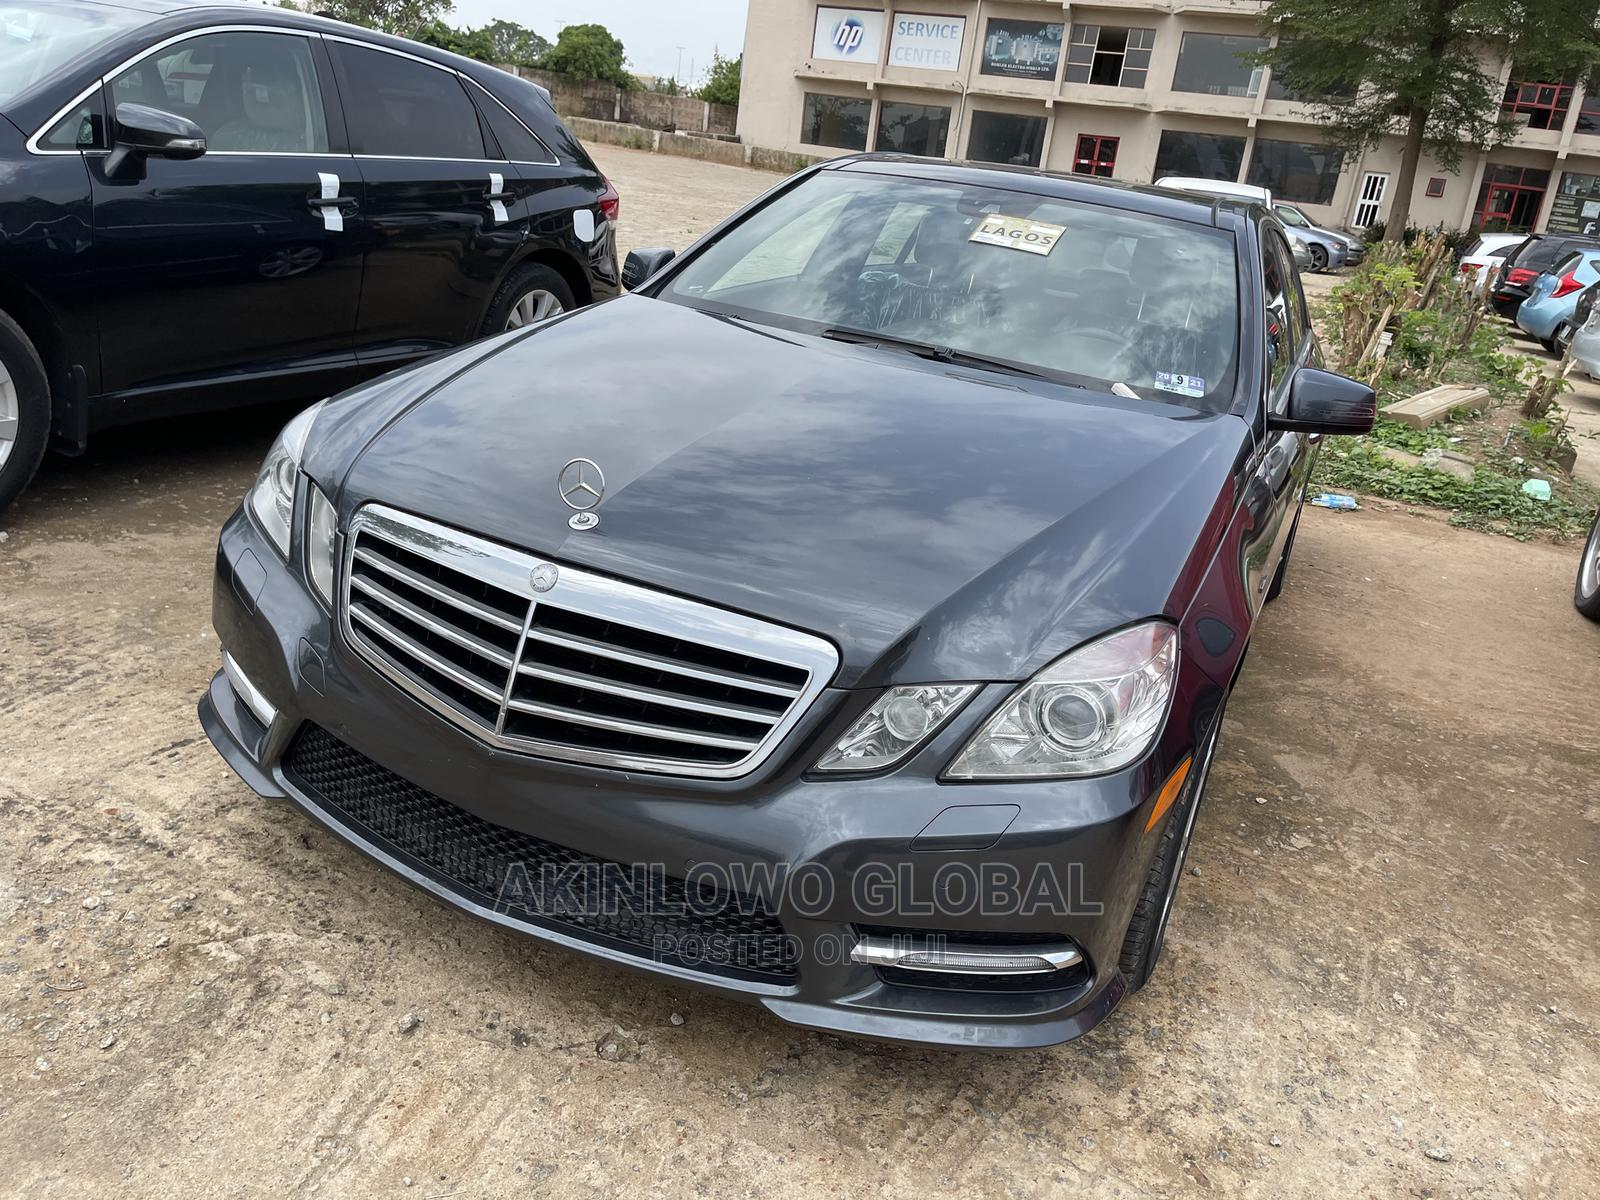 Mercedes-Benz E350 2012 Black   Cars for sale in Central Business Dis, Abuja (FCT) State, Nigeria